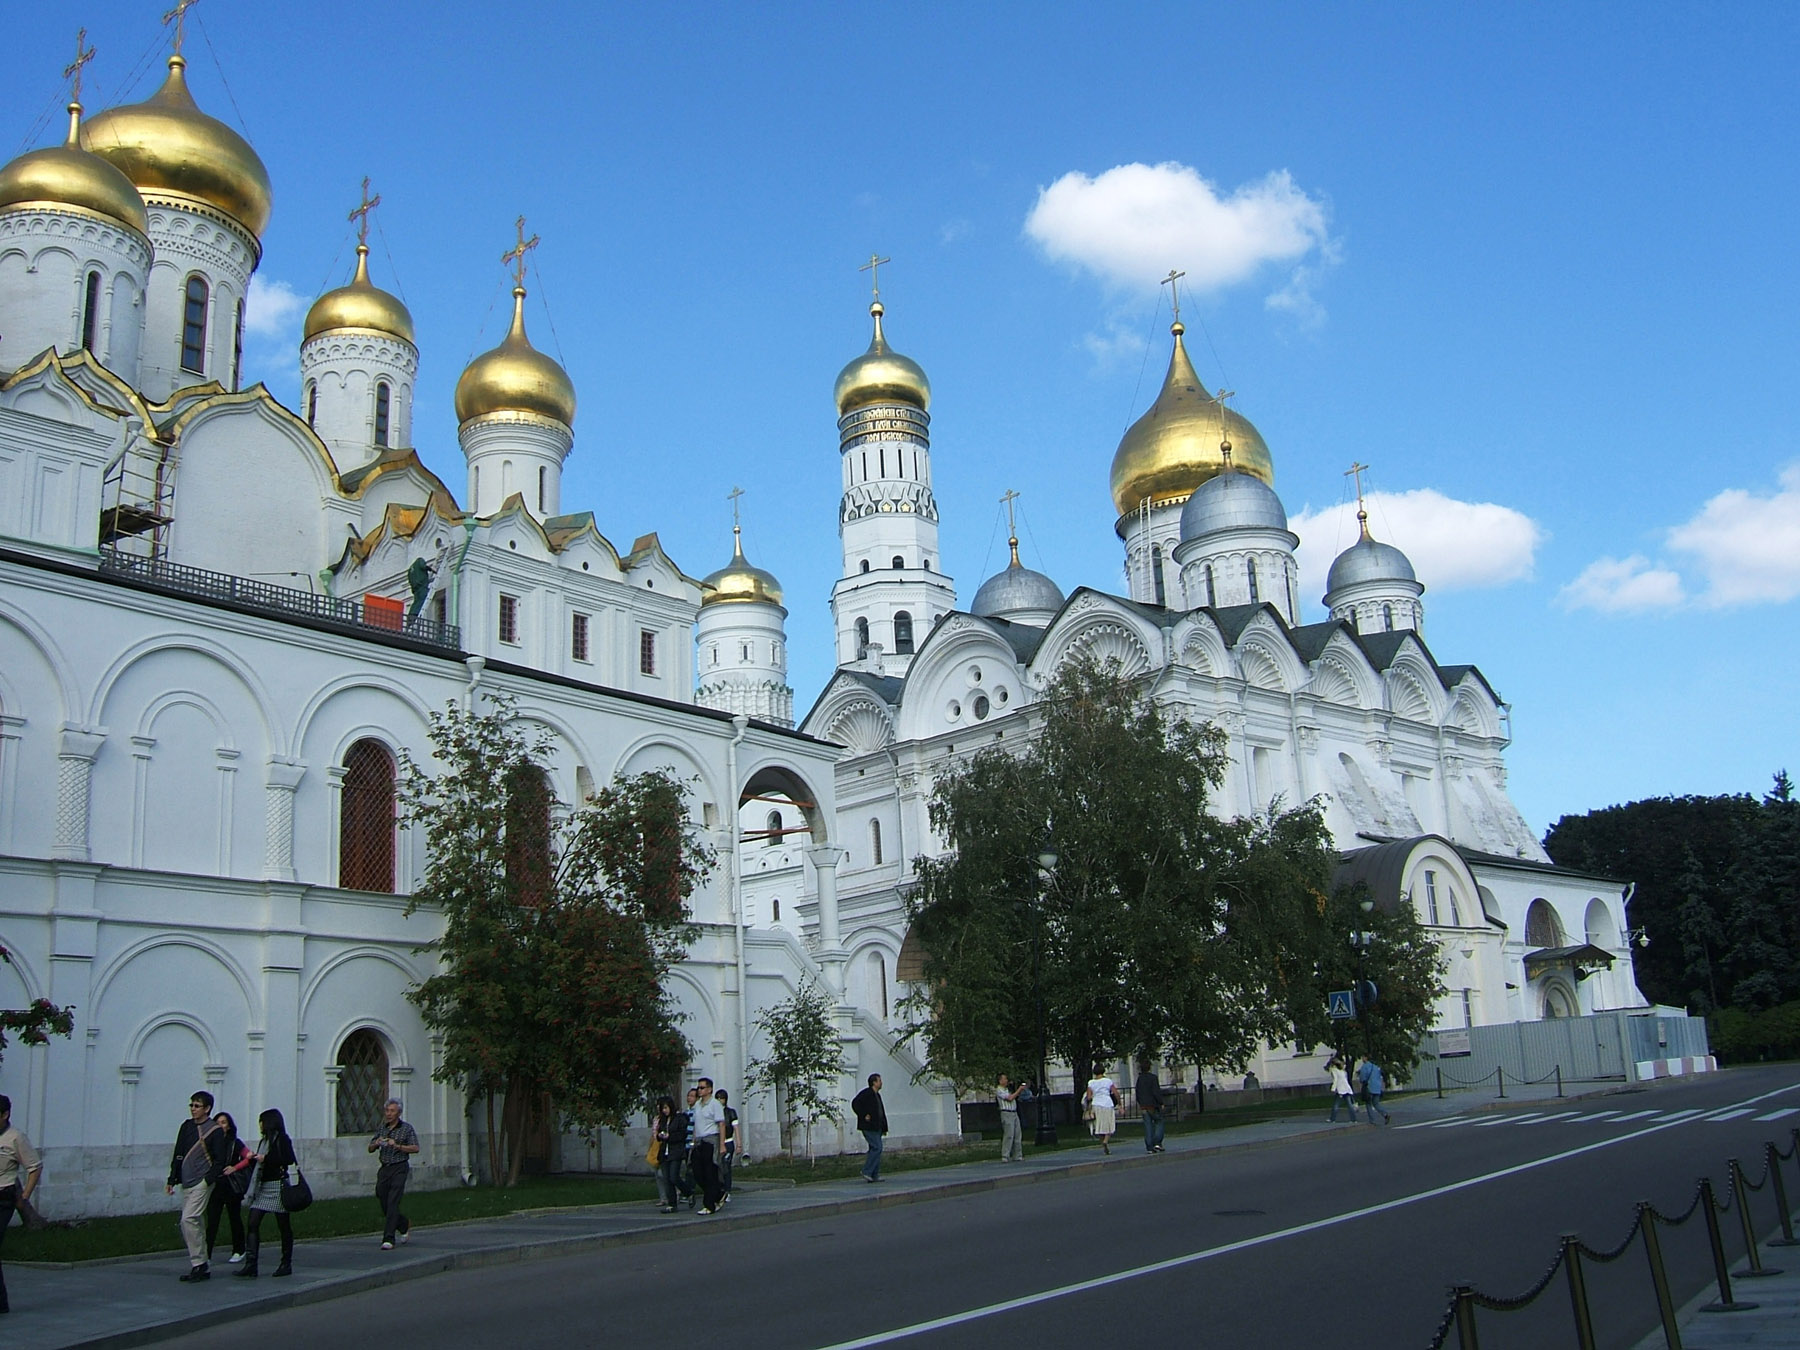 Archangel and annunciation cathedrals in cathedral square the kremlin